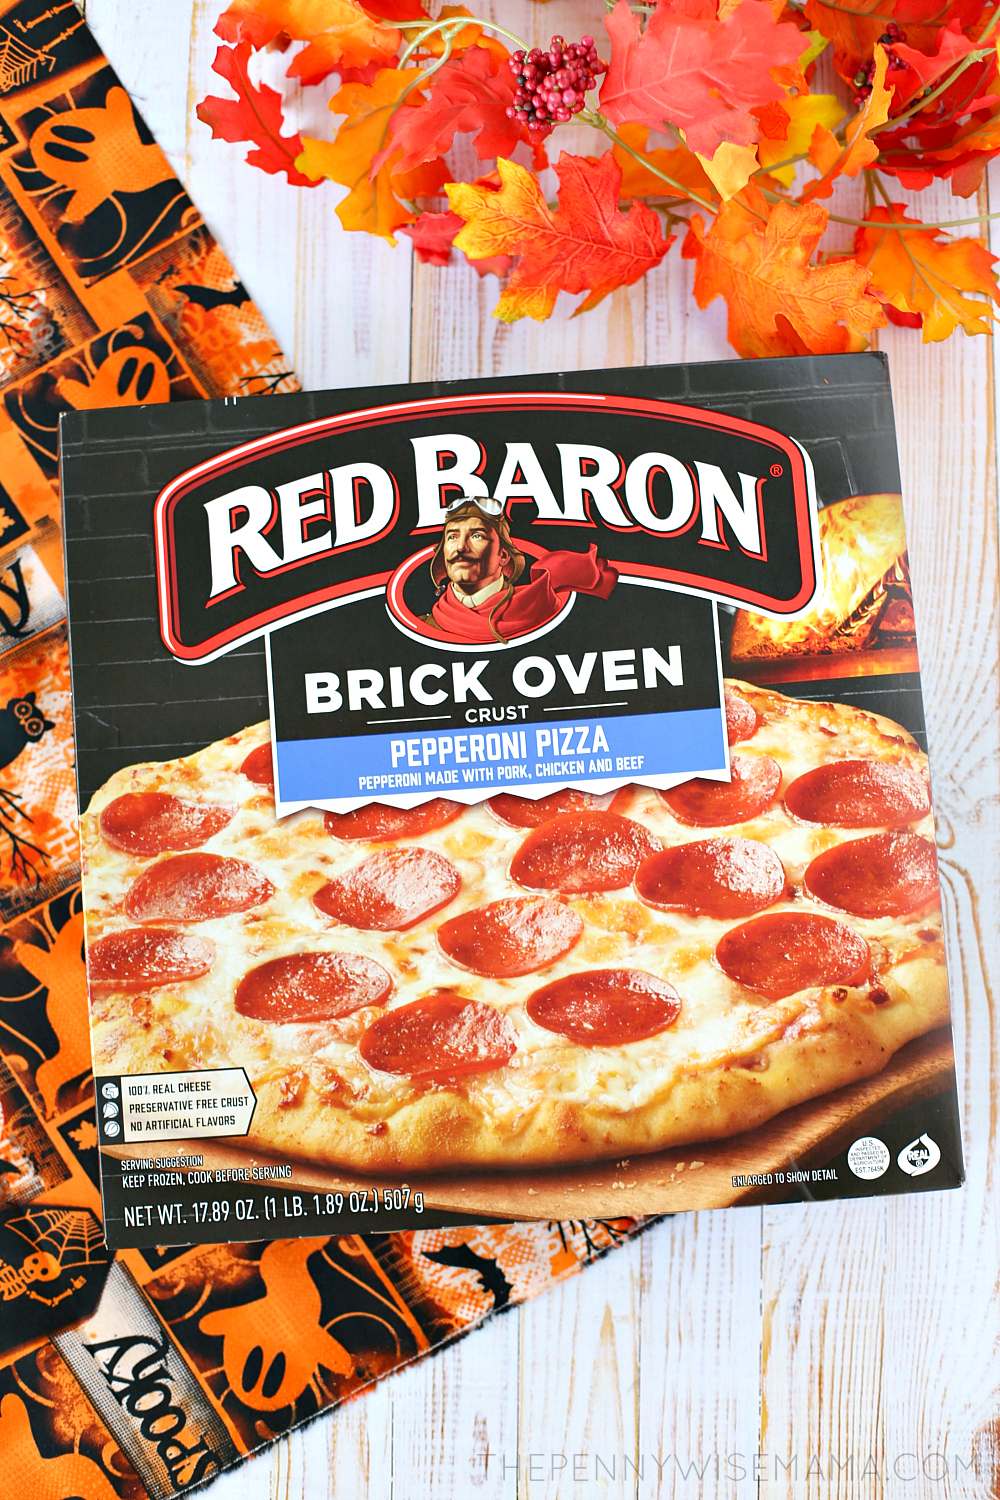 Red Baron Brick Oven Pizza - Perfect for Halloween or any day of the week!